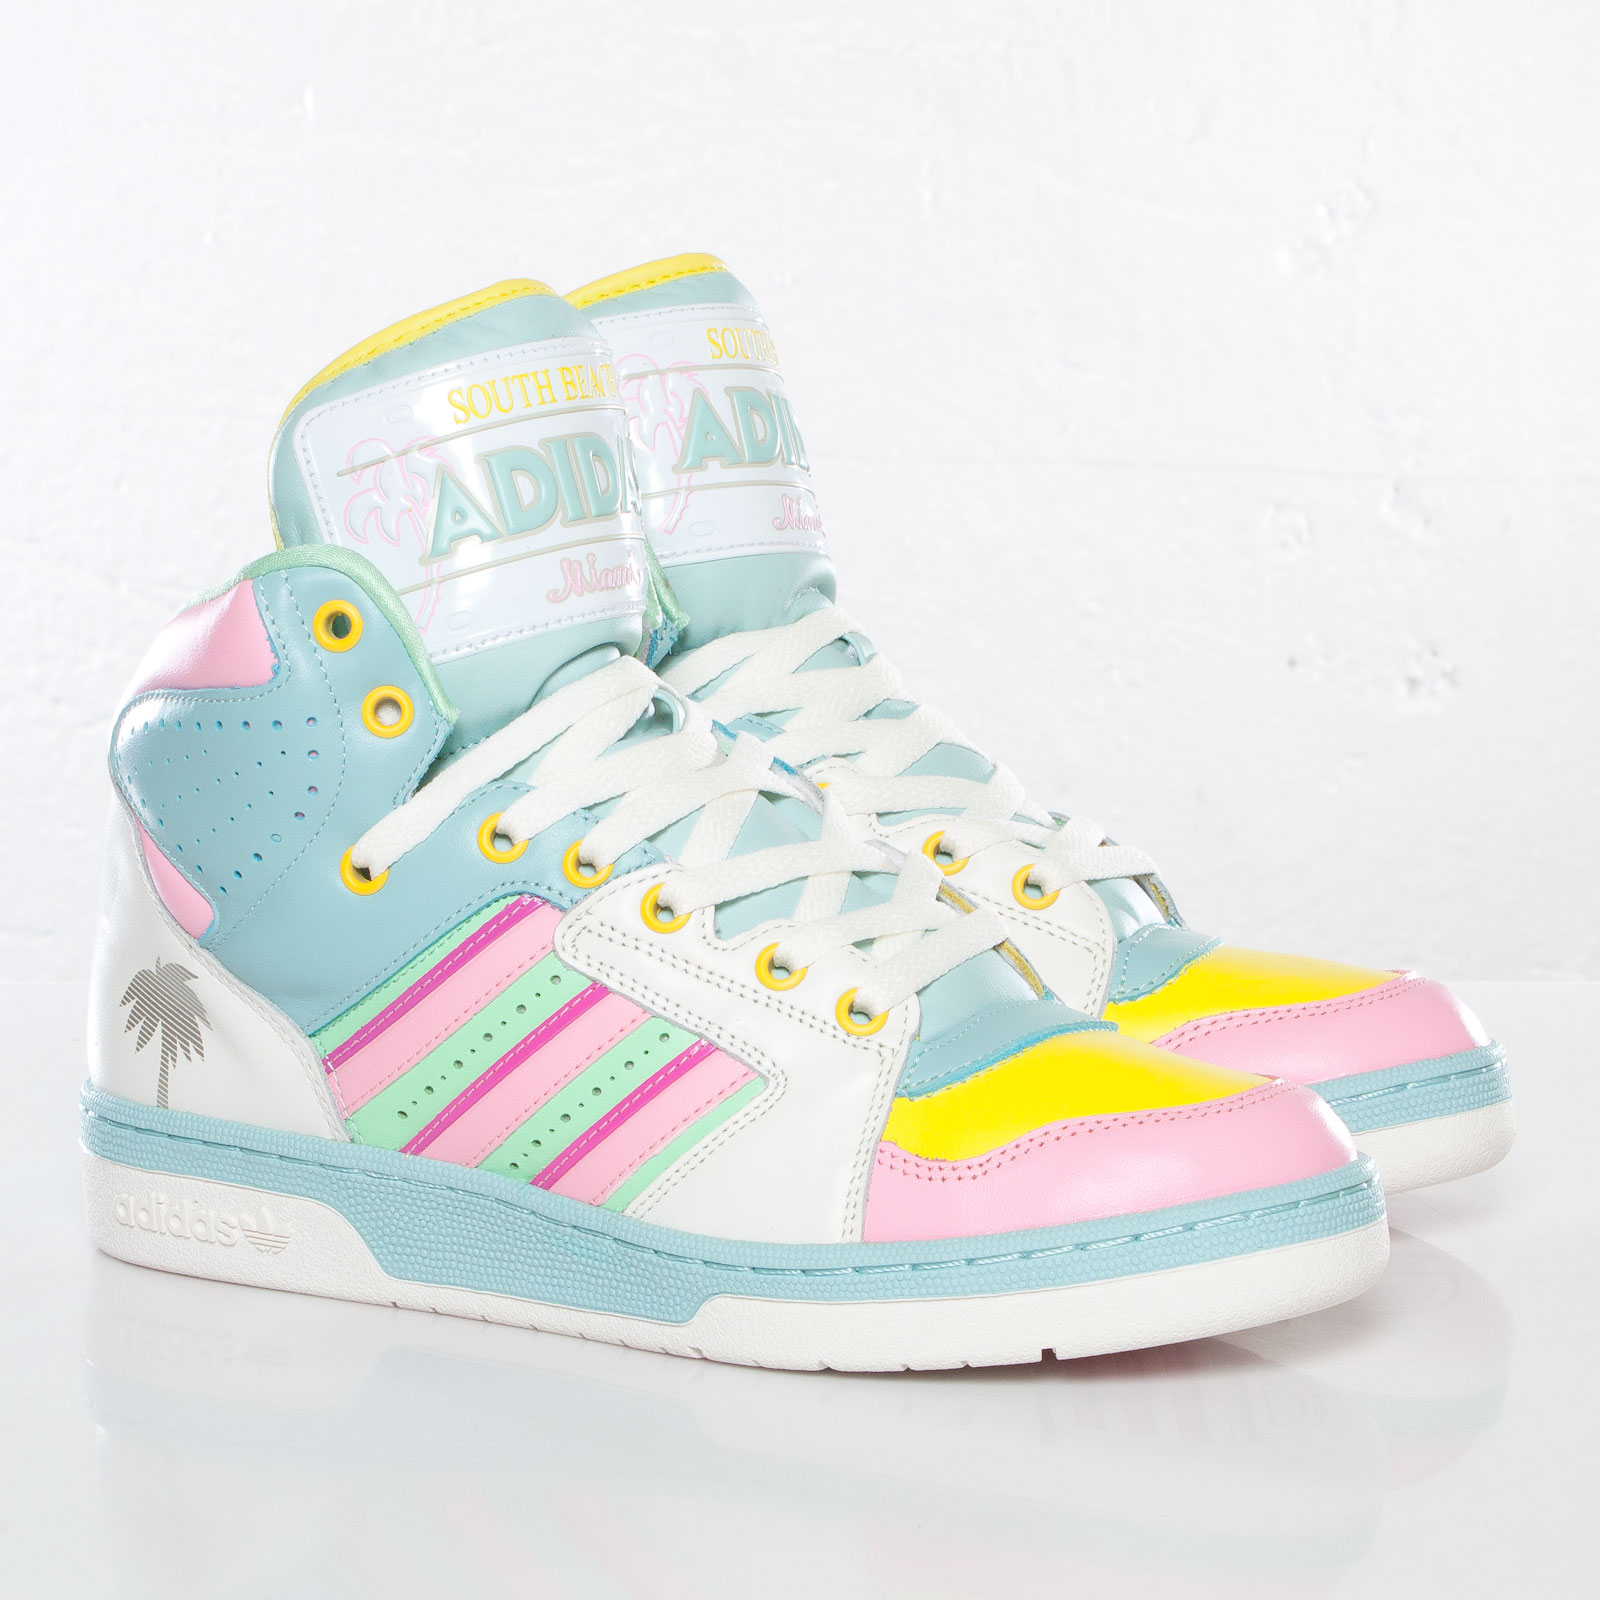 adidas JS License Plate Miami - G95772 - Sneakersnstuff I Sneakers ...